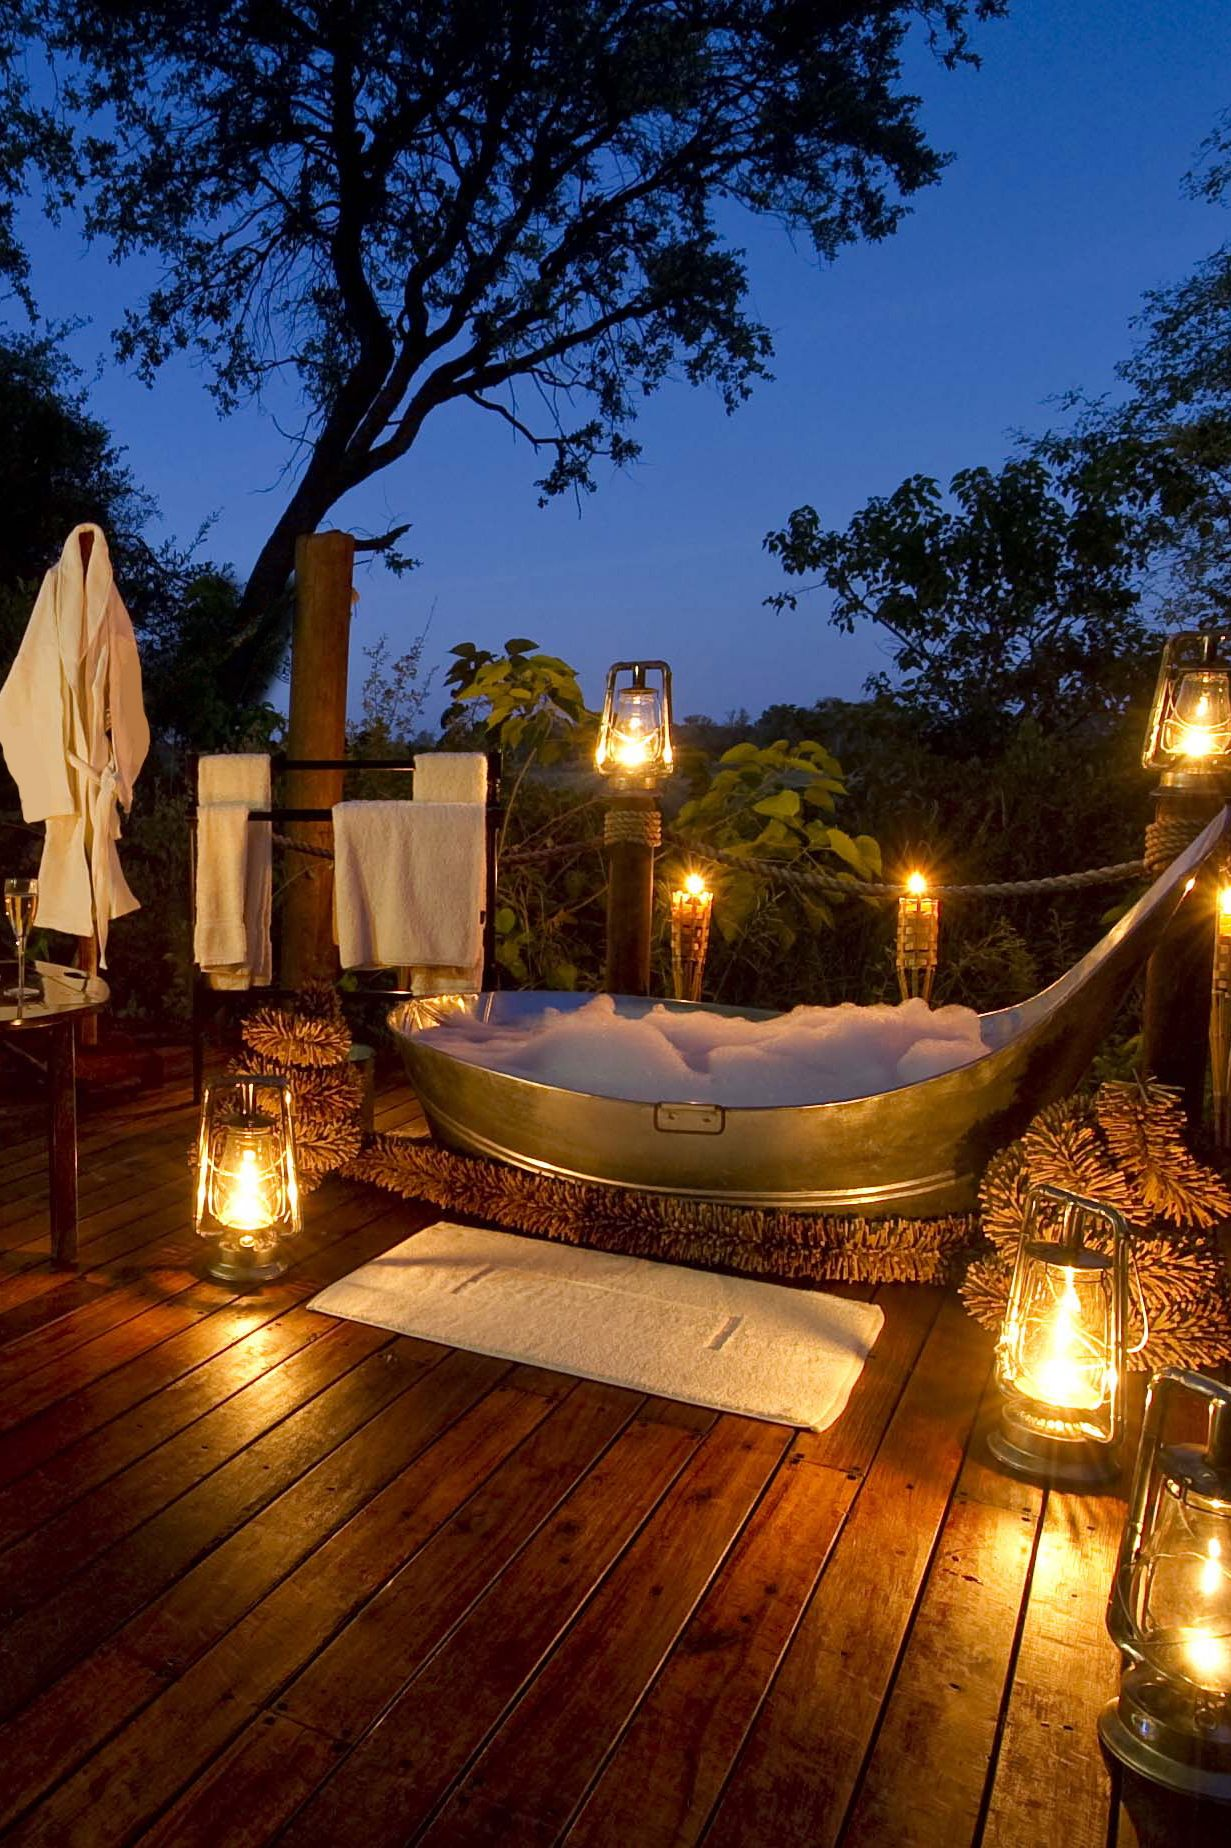 Badkuip Camping Thelist The New Places To Honeymoon In 2015 Travelicious